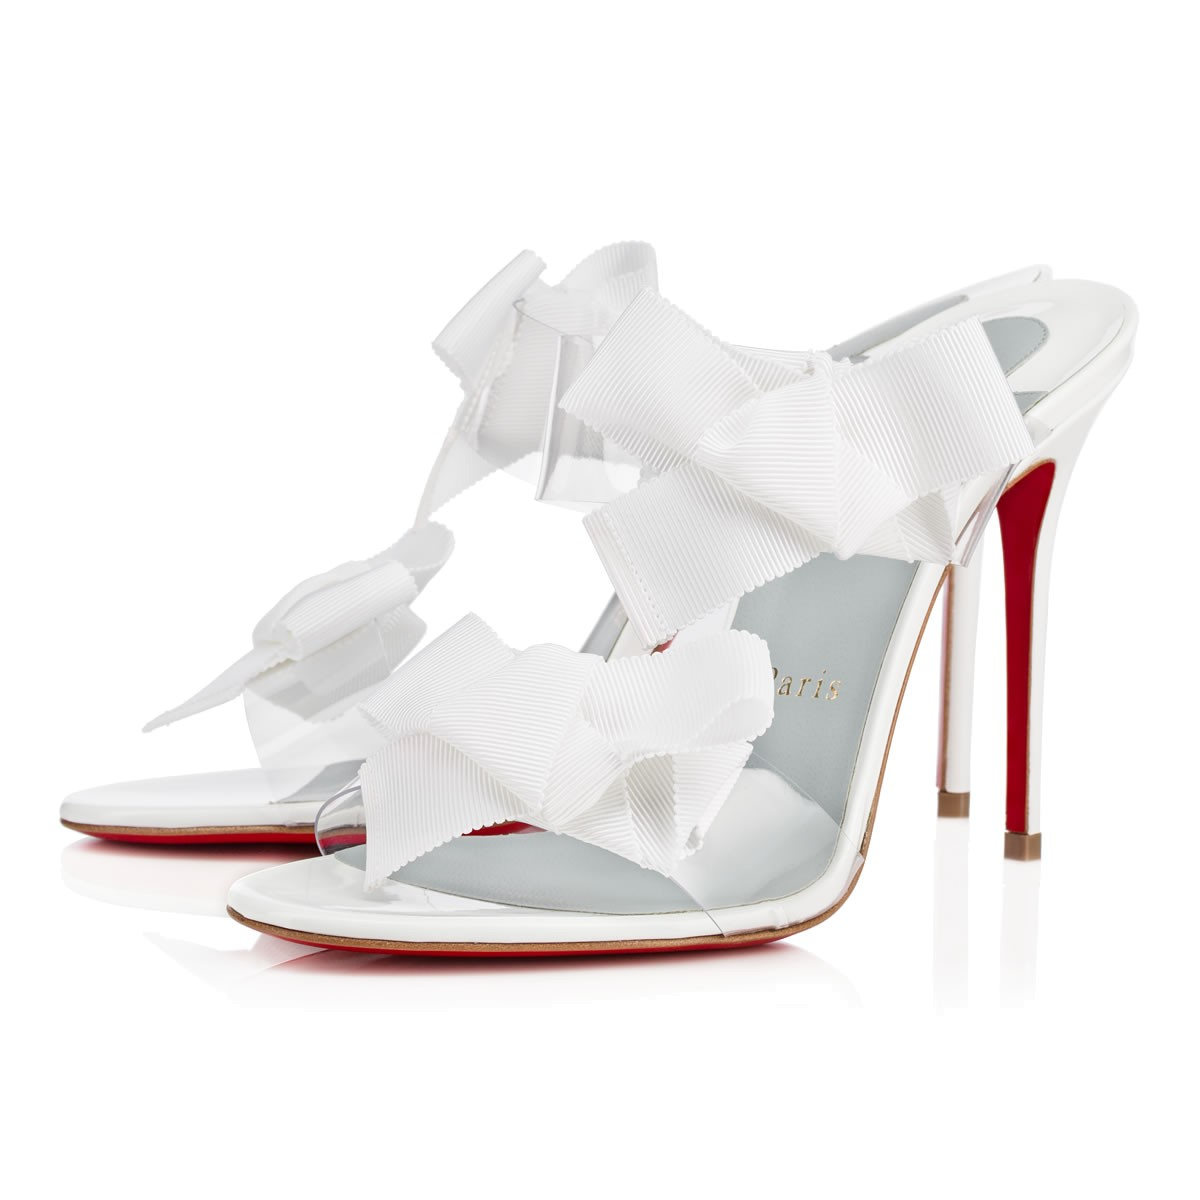 christian louboutin-delicanodo-wedding shoes